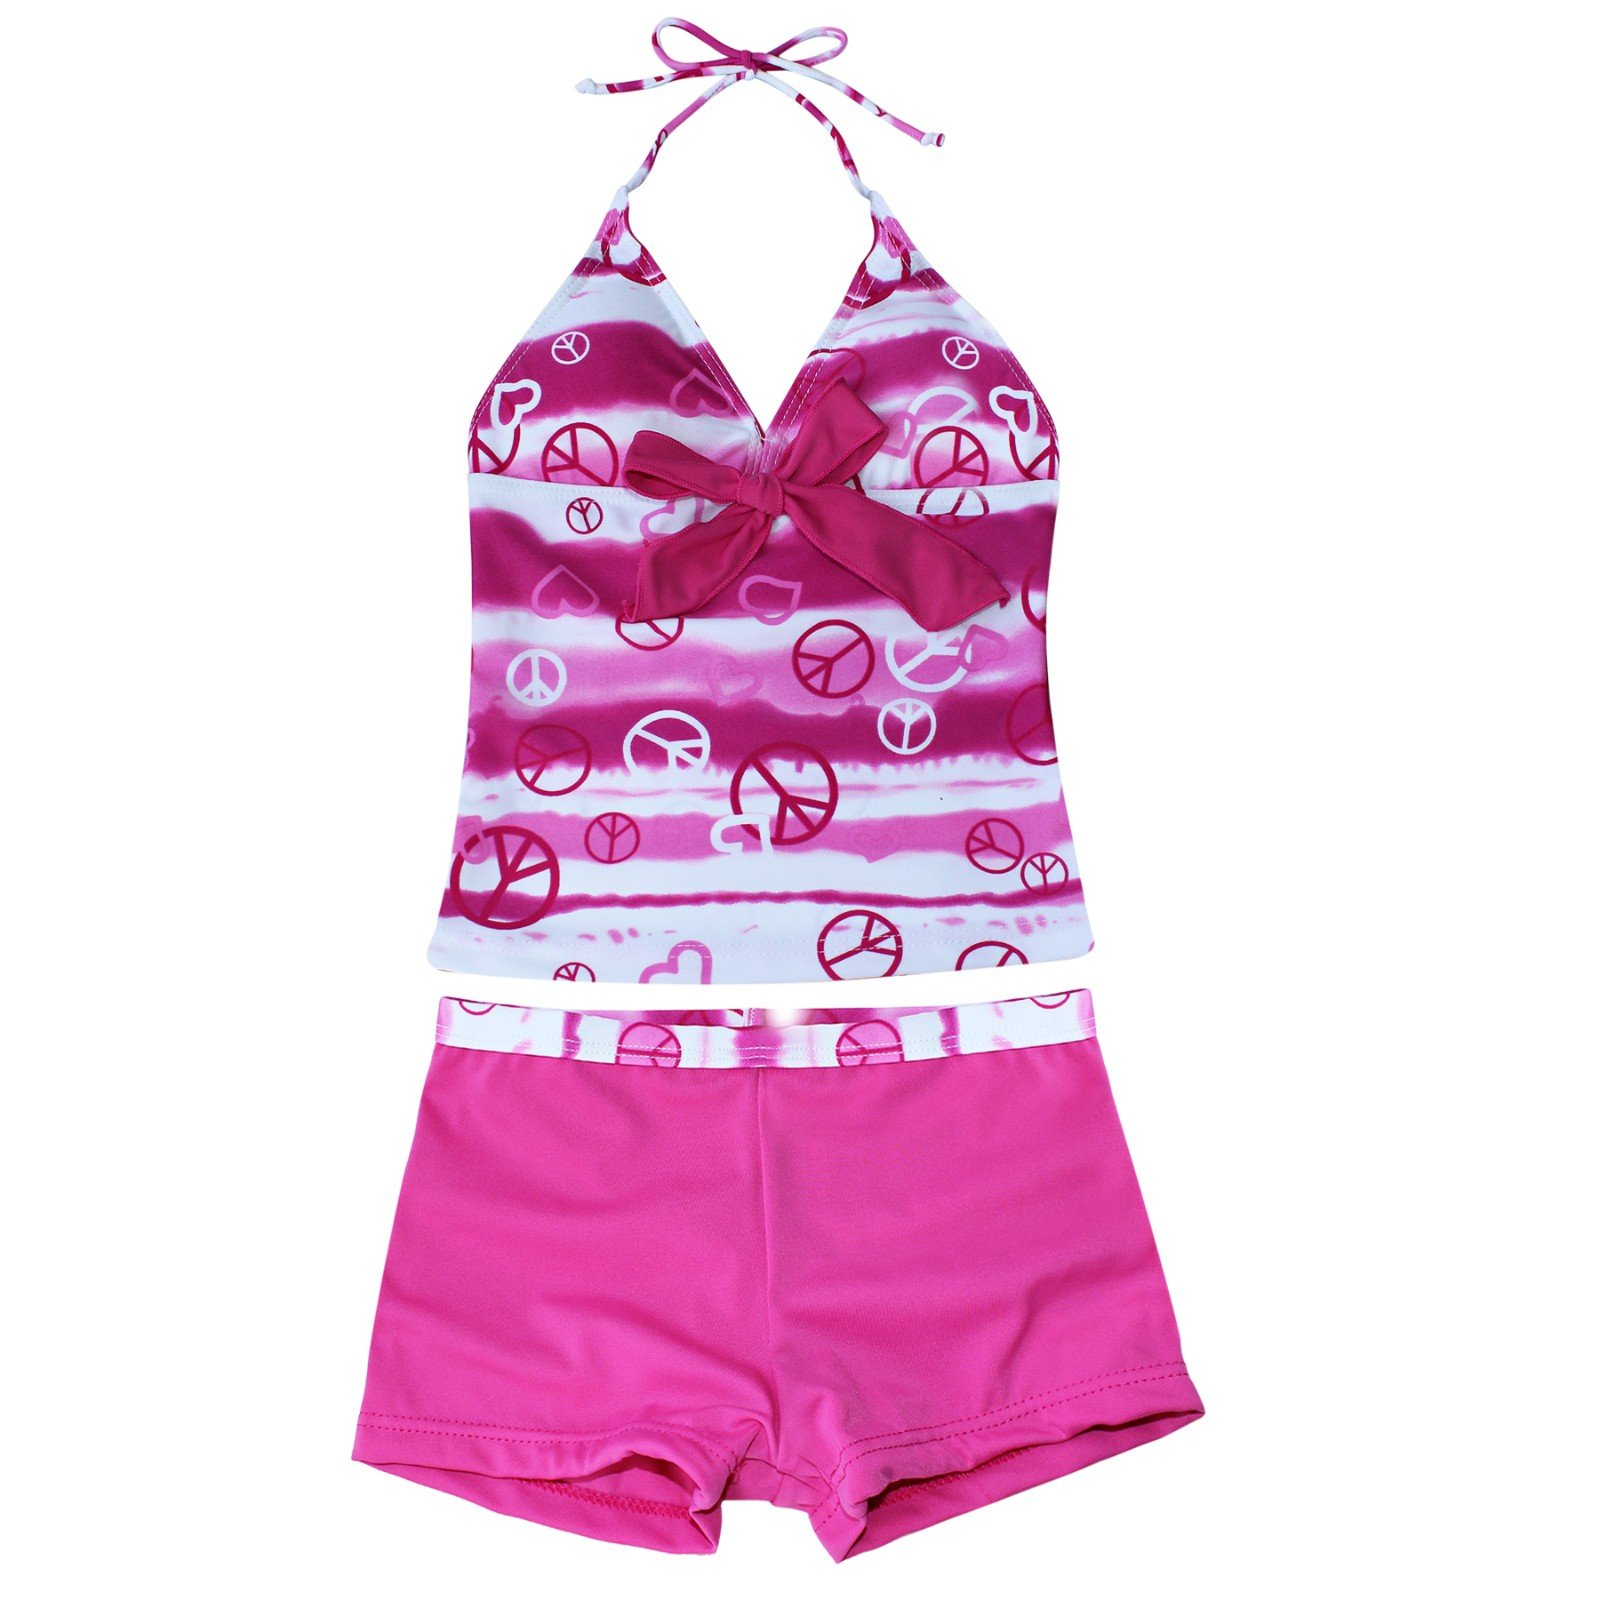 Alvivi Big Girls' Peace Signs Summer Two Piece Tankini Swimsuits Halter Top Boyshort Sets Hot Pink A 12